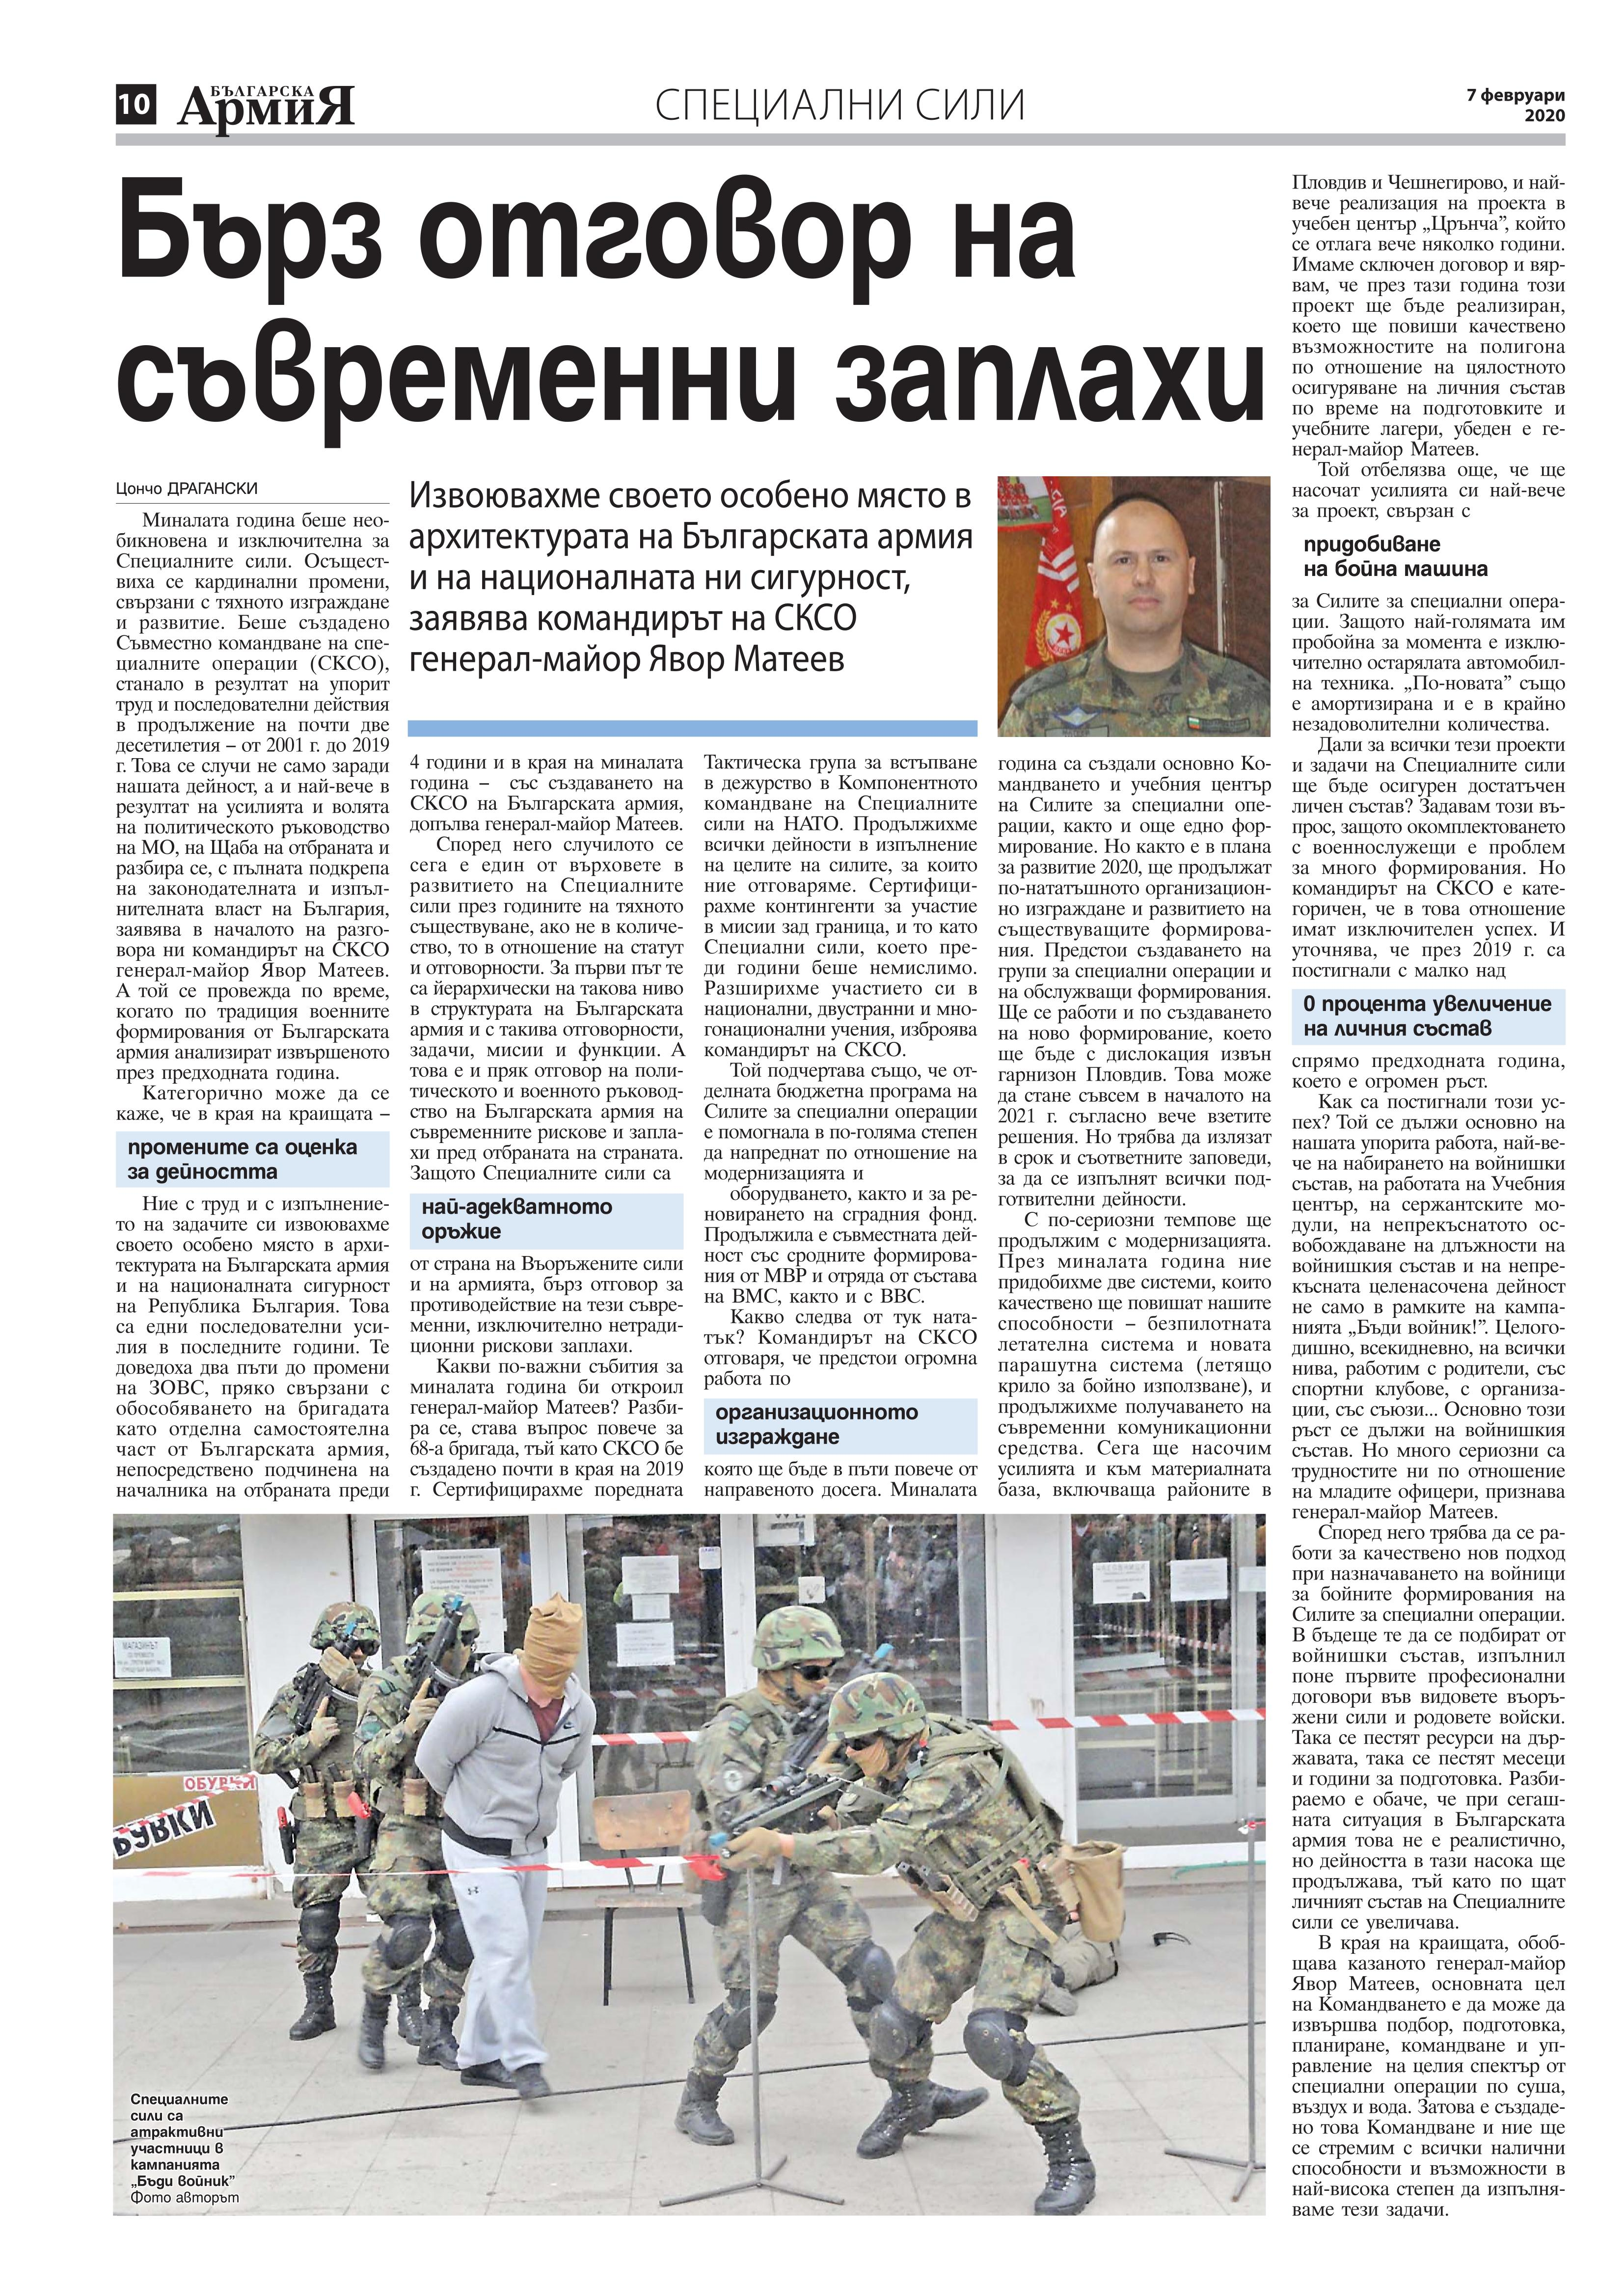 https://armymedia.bg/wp-content/uploads/2015/06/10.page1_-126.jpg